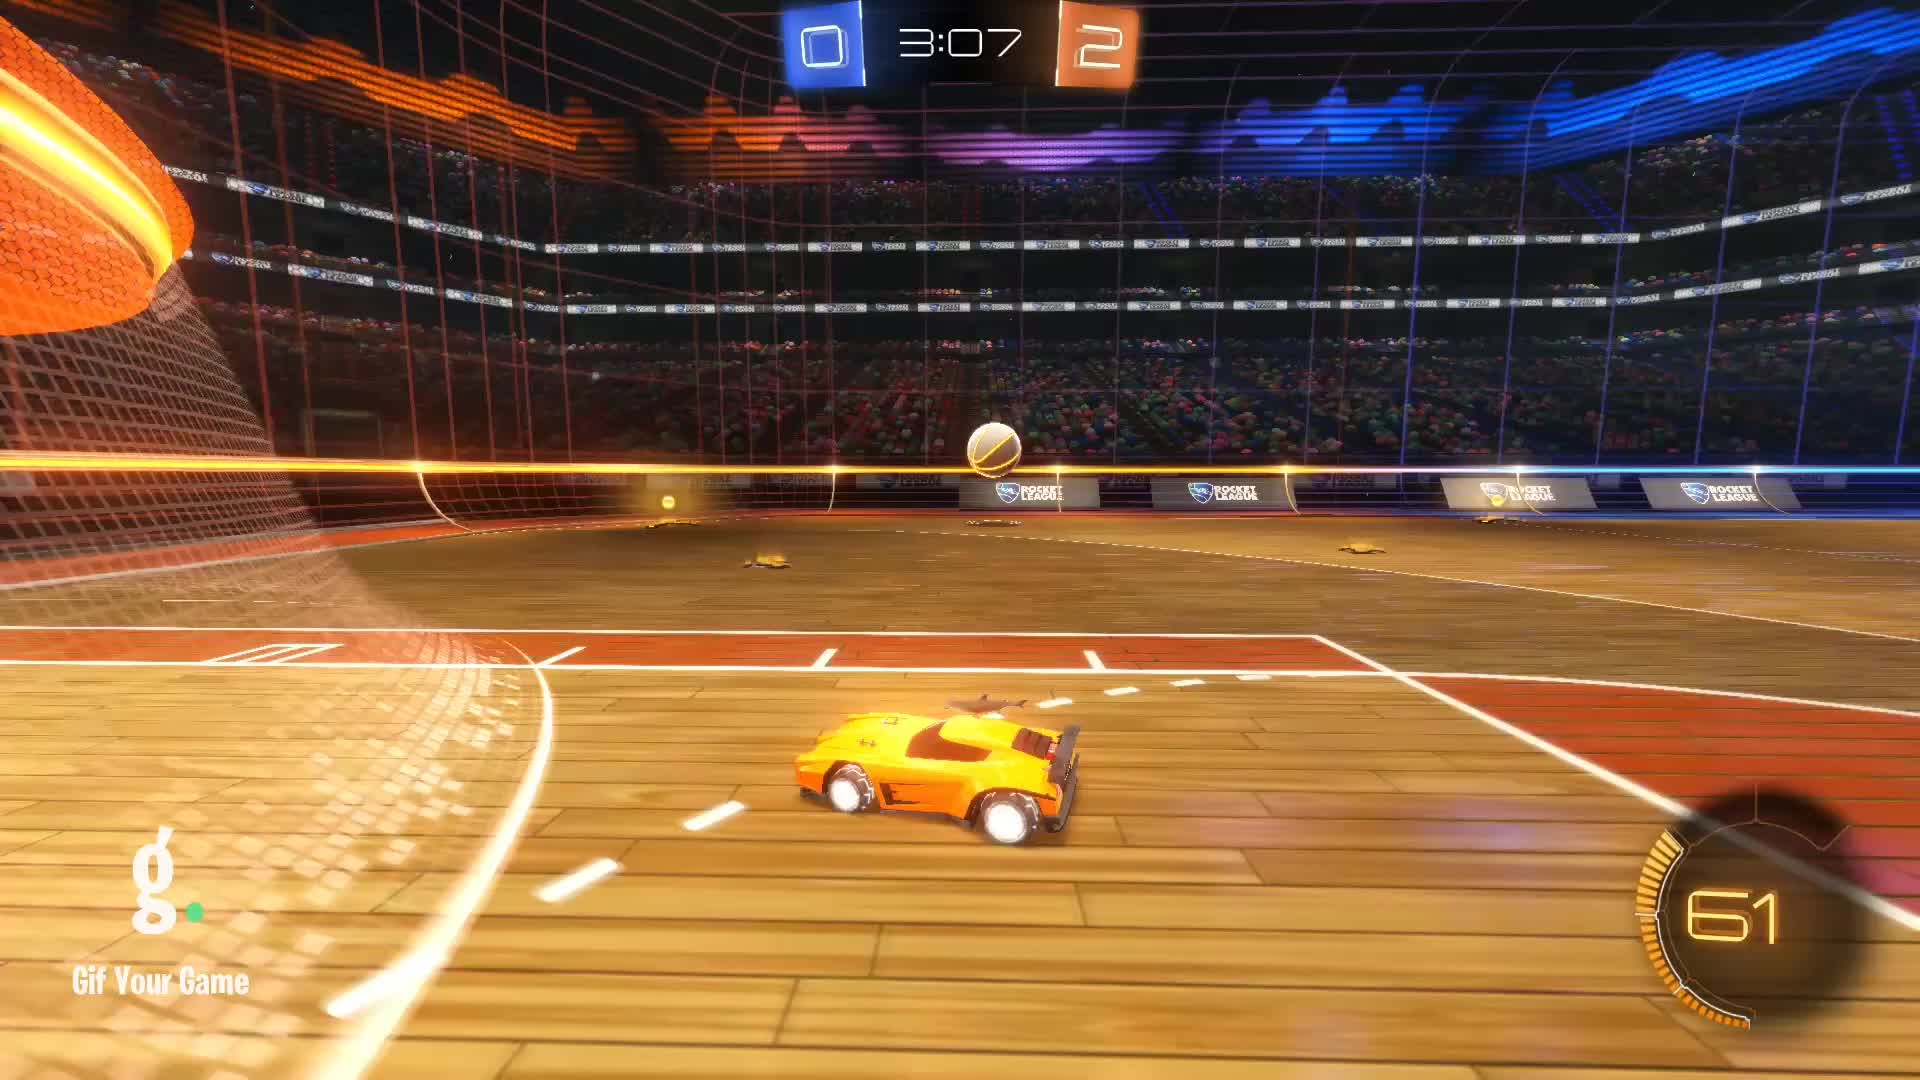 Einseln, Gif Your Game, GifYourGame, Goal, Rocket League, RocketLeague, Goal 3: Einseln GIFs